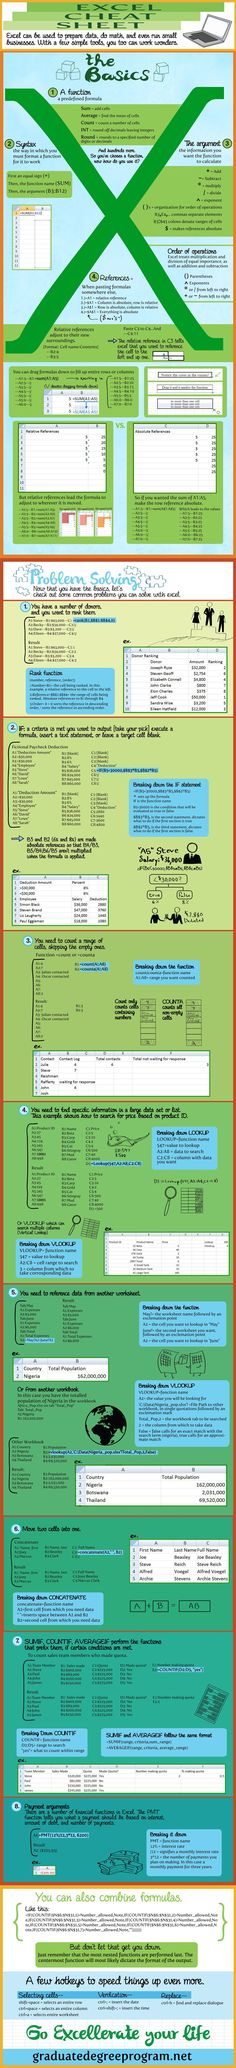 Ediblewildsus  Remarkable Microsoft Excel Microsoft And Cheat Sheets On Pinterest With Outstanding Excel Cheat Httpgraduatedegreeprogramnetexcelcheats With Attractive Excel Compare Two Values Also Tco Calculator Excel In Addition How To Add Data Analysis To Excel And  Day Plan Template Excel As Well As Excel Jon Boats Additionally Mac Excel Help From Pinterestcom With Ediblewildsus  Outstanding Microsoft Excel Microsoft And Cheat Sheets On Pinterest With Attractive Excel Cheat Httpgraduatedegreeprogramnetexcelcheats And Remarkable Excel Compare Two Values Also Tco Calculator Excel In Addition How To Add Data Analysis To Excel From Pinterestcom